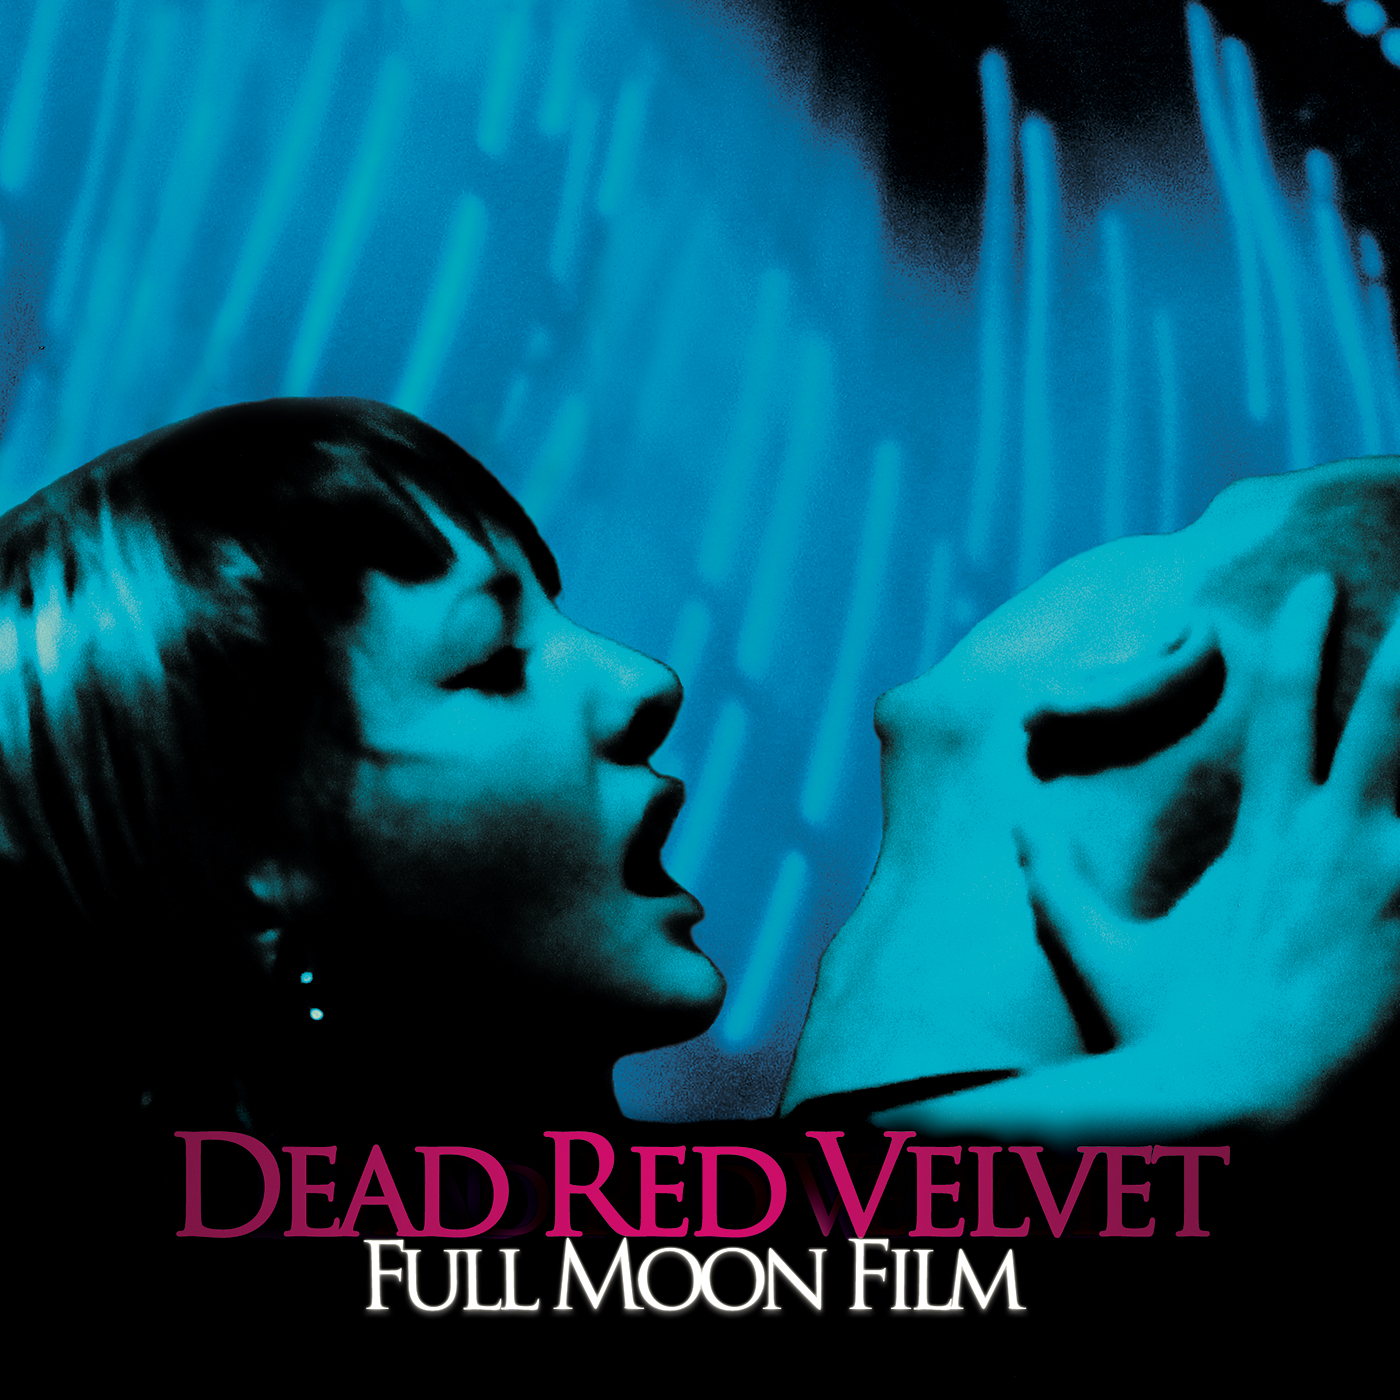 dead-red-velvet-full-moon-film-compact-disc-album